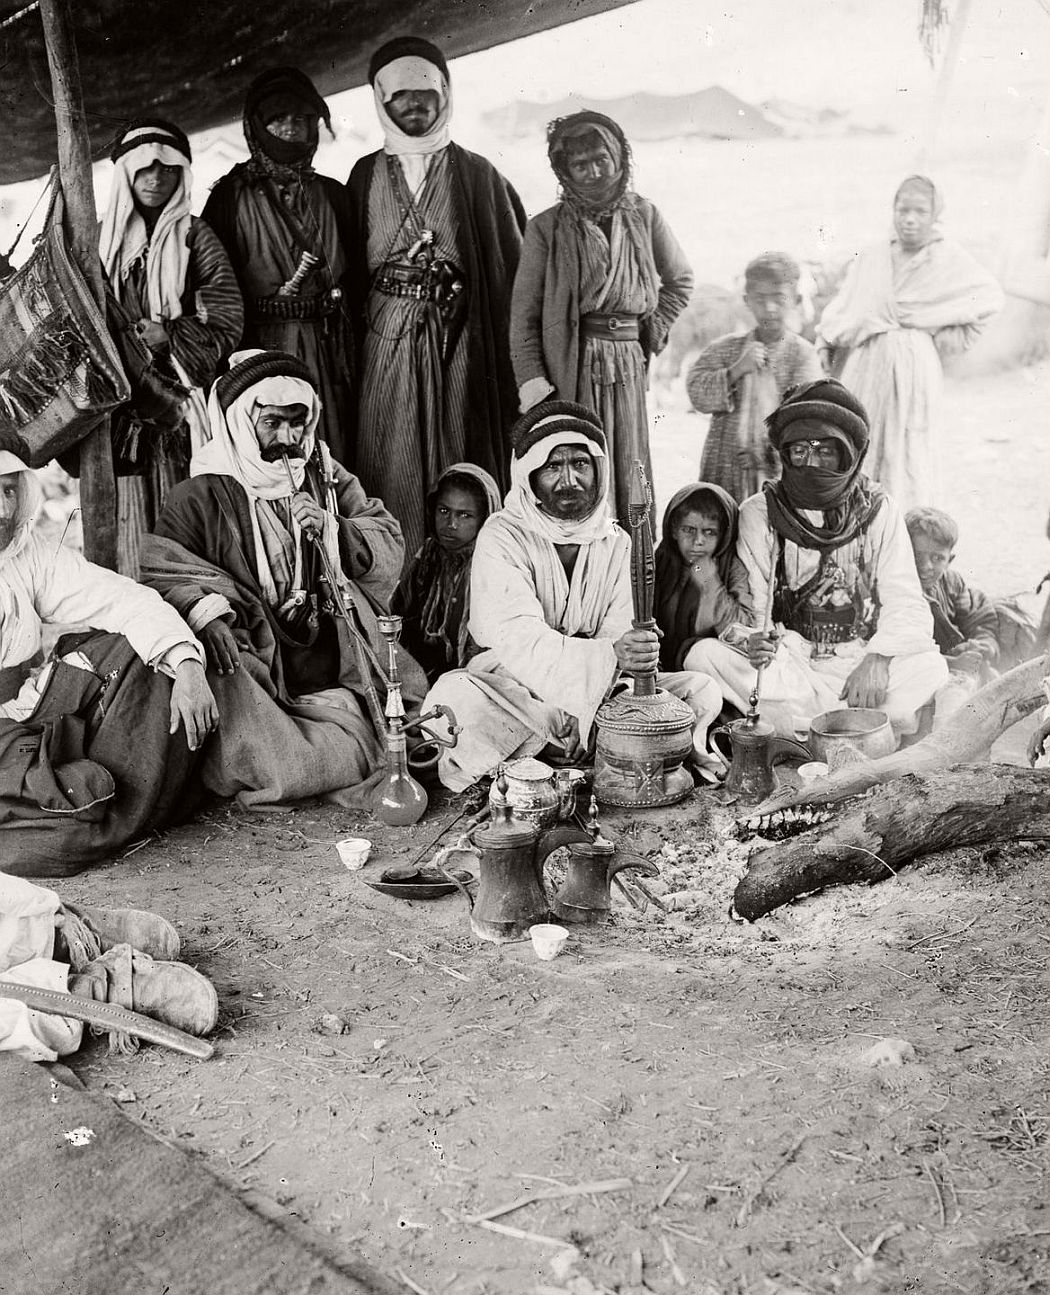 vintage-bedouins-in-egypt-the-sinai-palestine-and-jerusalem-from-1898-10